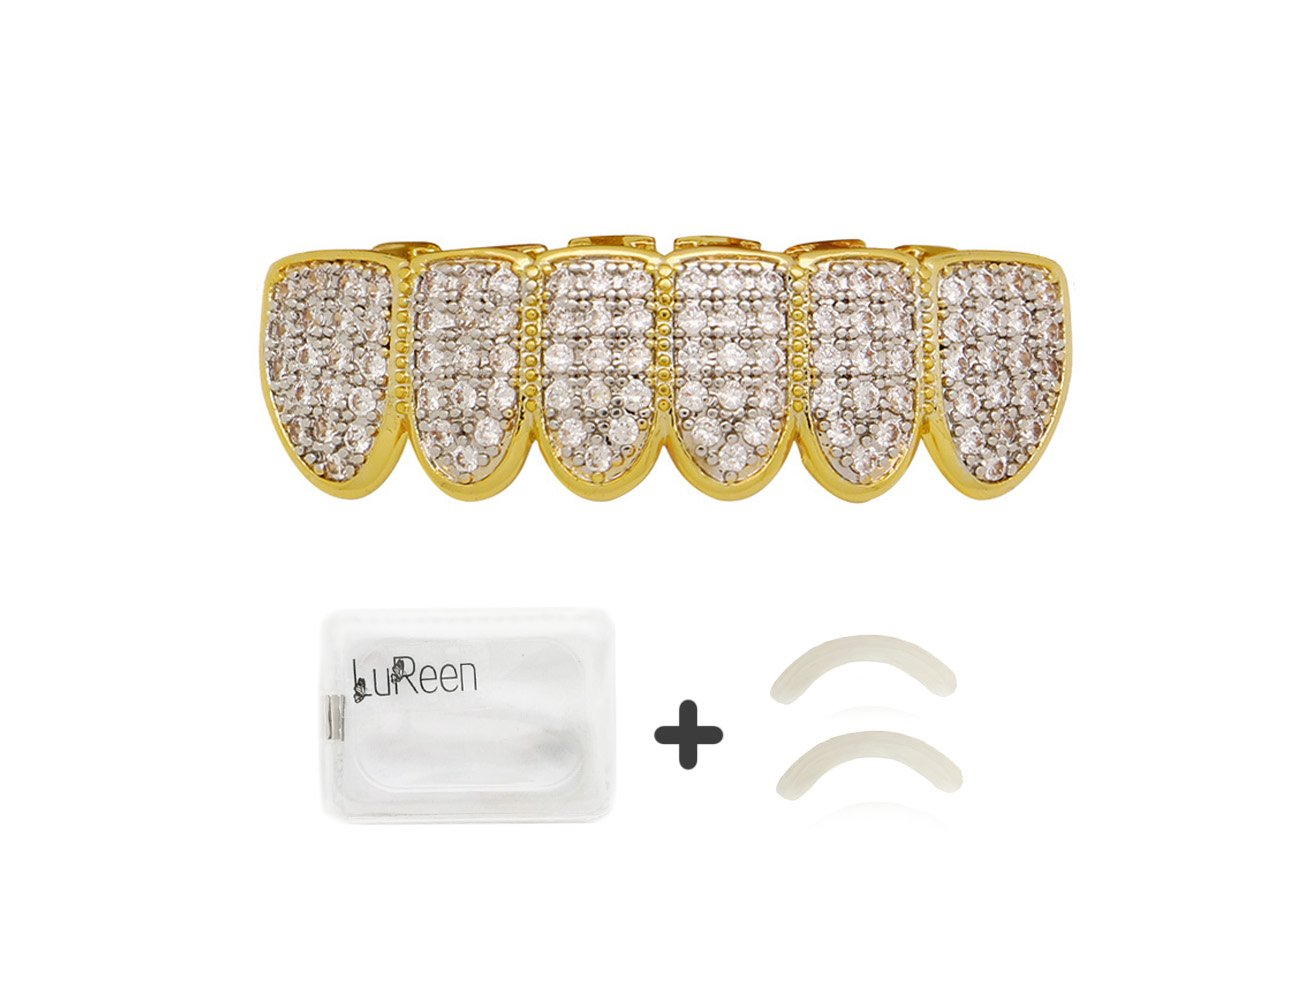 Lureen Gold Silver Twotone Iced Out CZ Vampire Fangs Grillz Set + 2 EXTRA Molding Bars (Bottom Grillz)